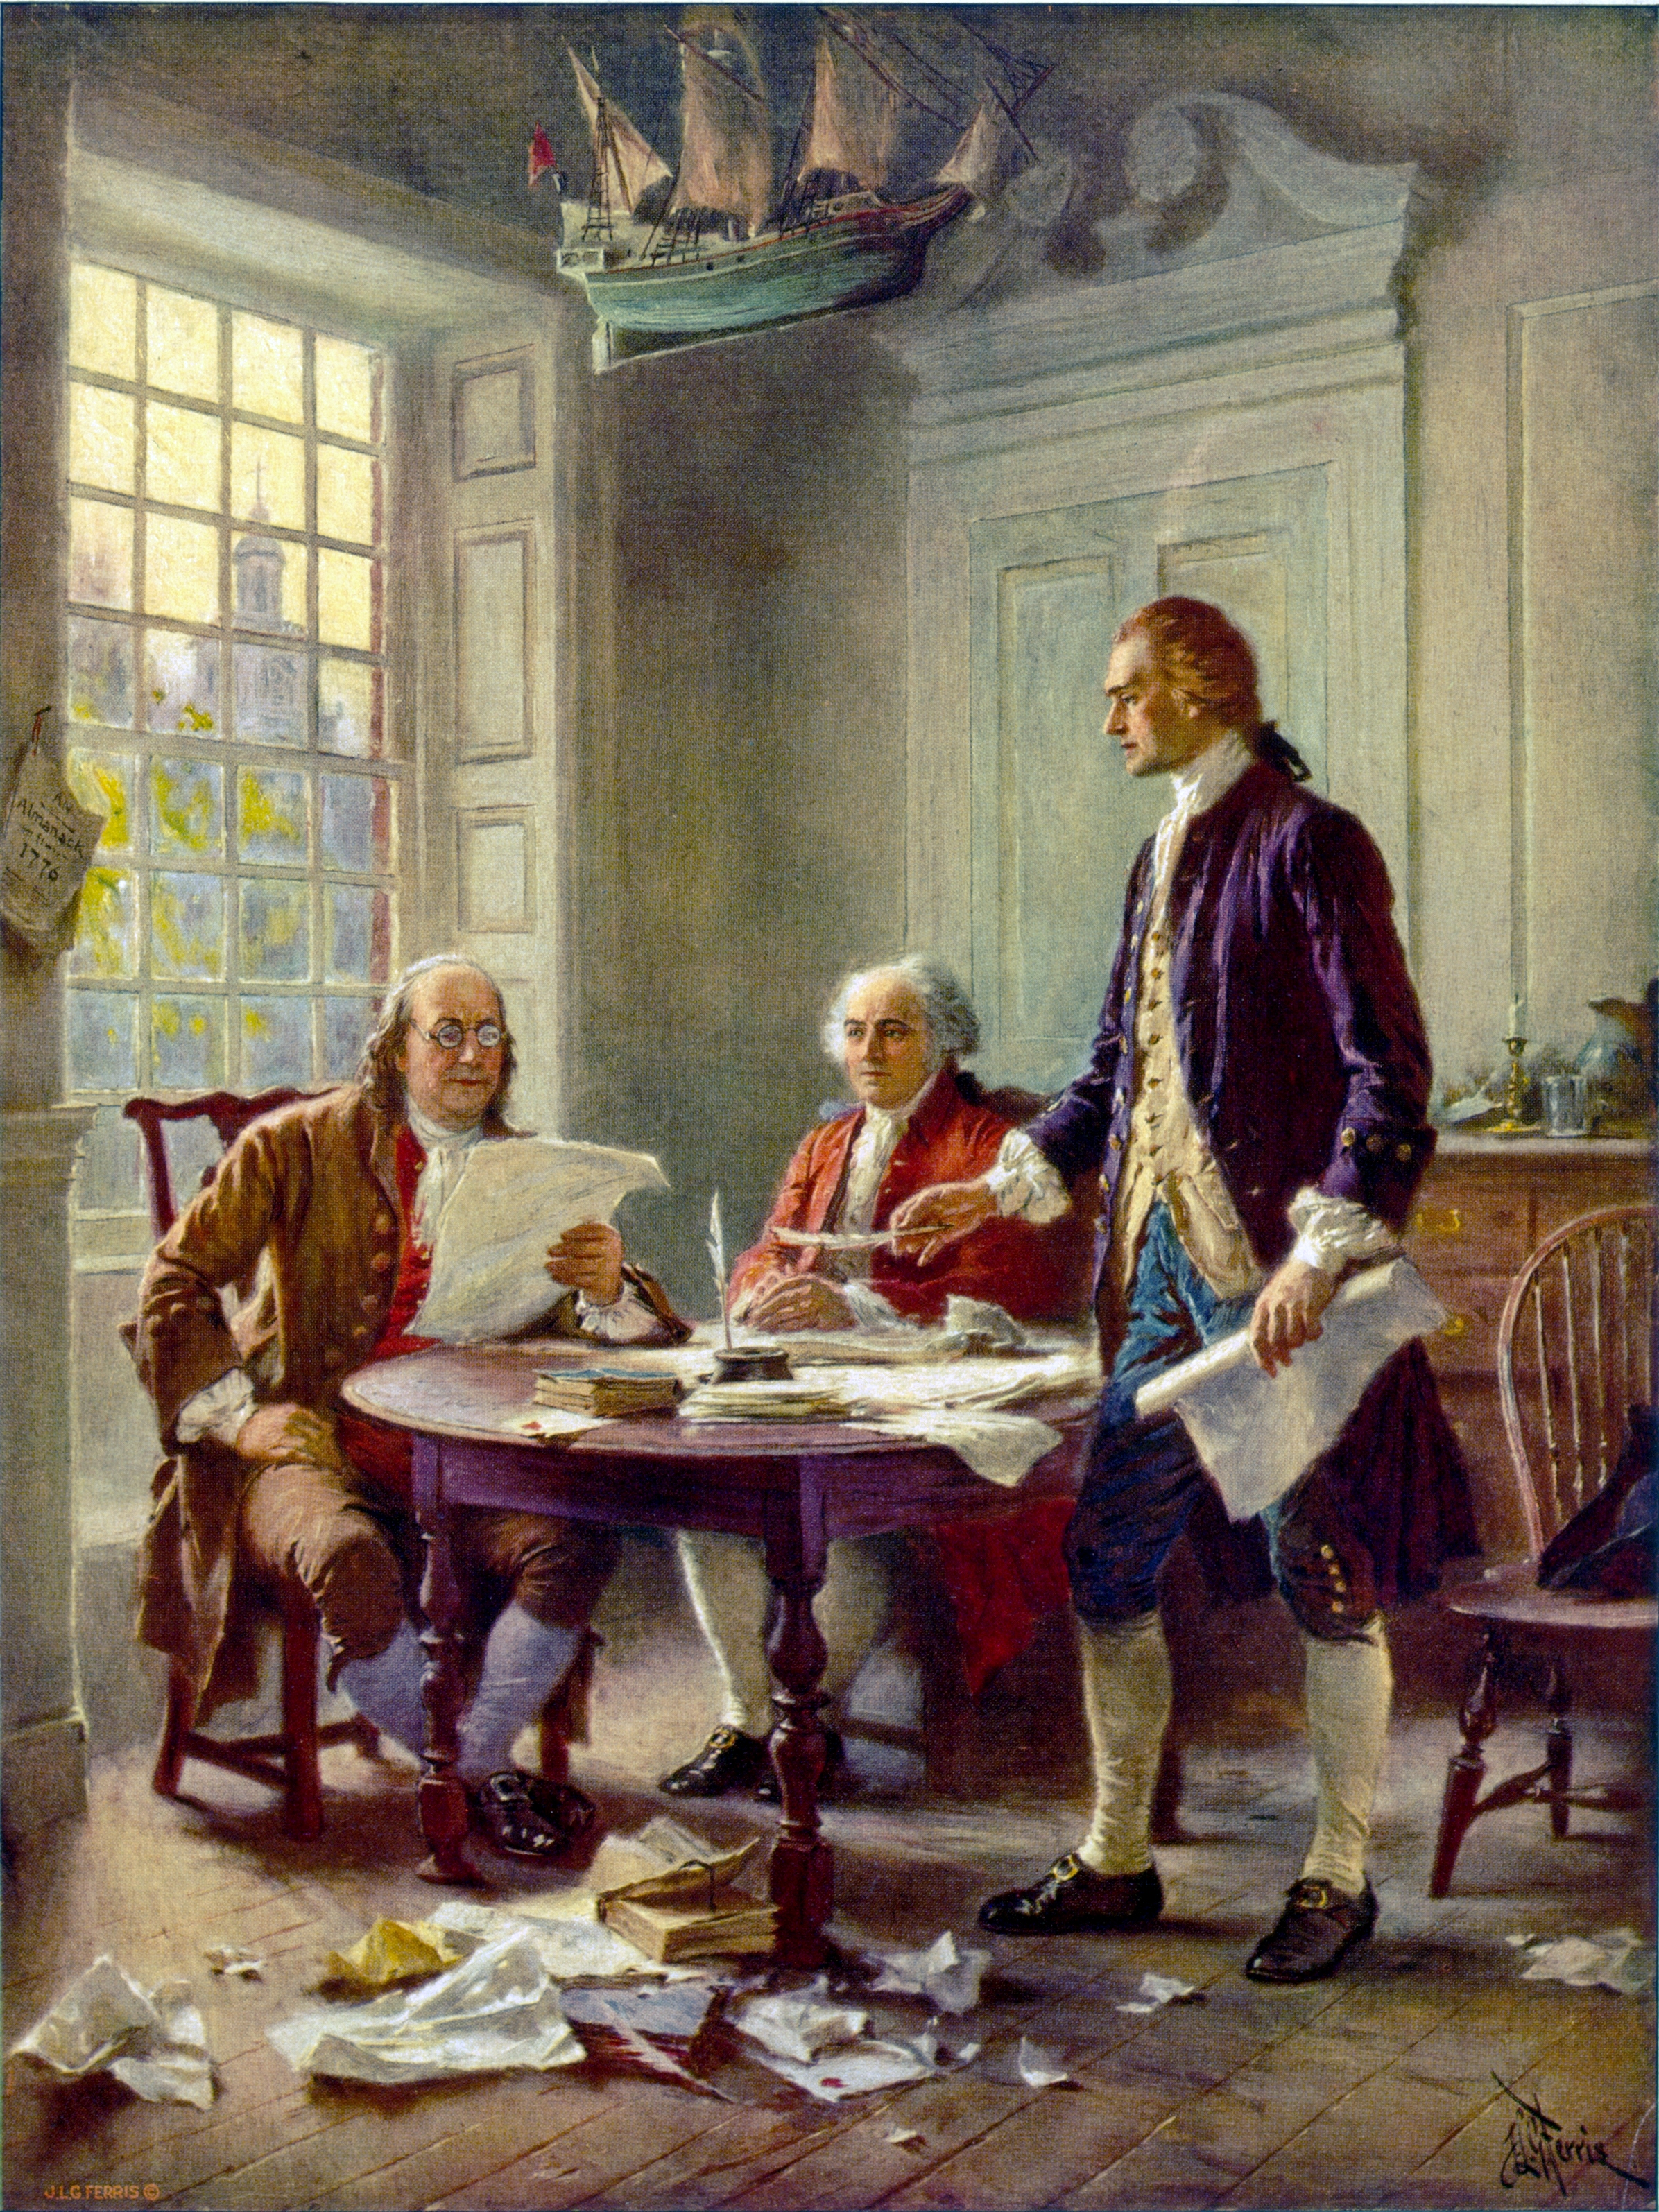 This idealized depiction of (left to right) Franklin, Adams, and Jefferson working on the Declaration was widely reprinted. (Wikimedia)